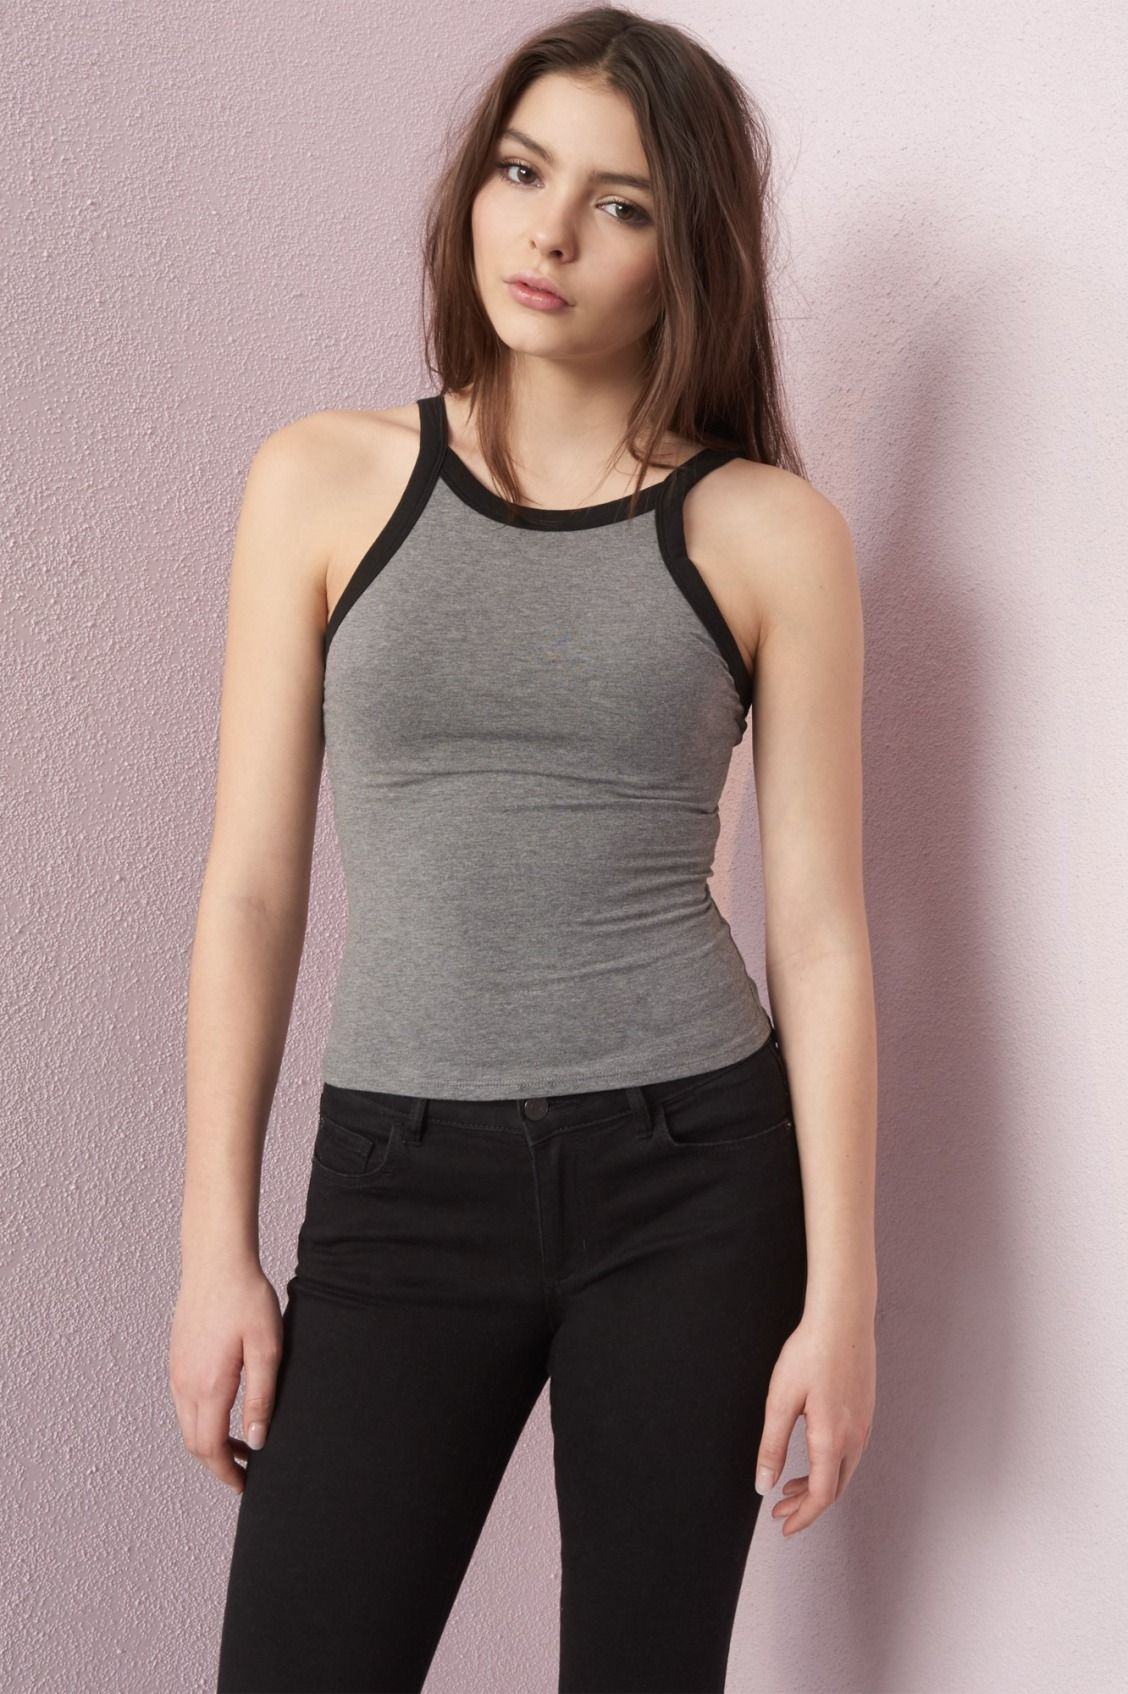 teens for clothing hot